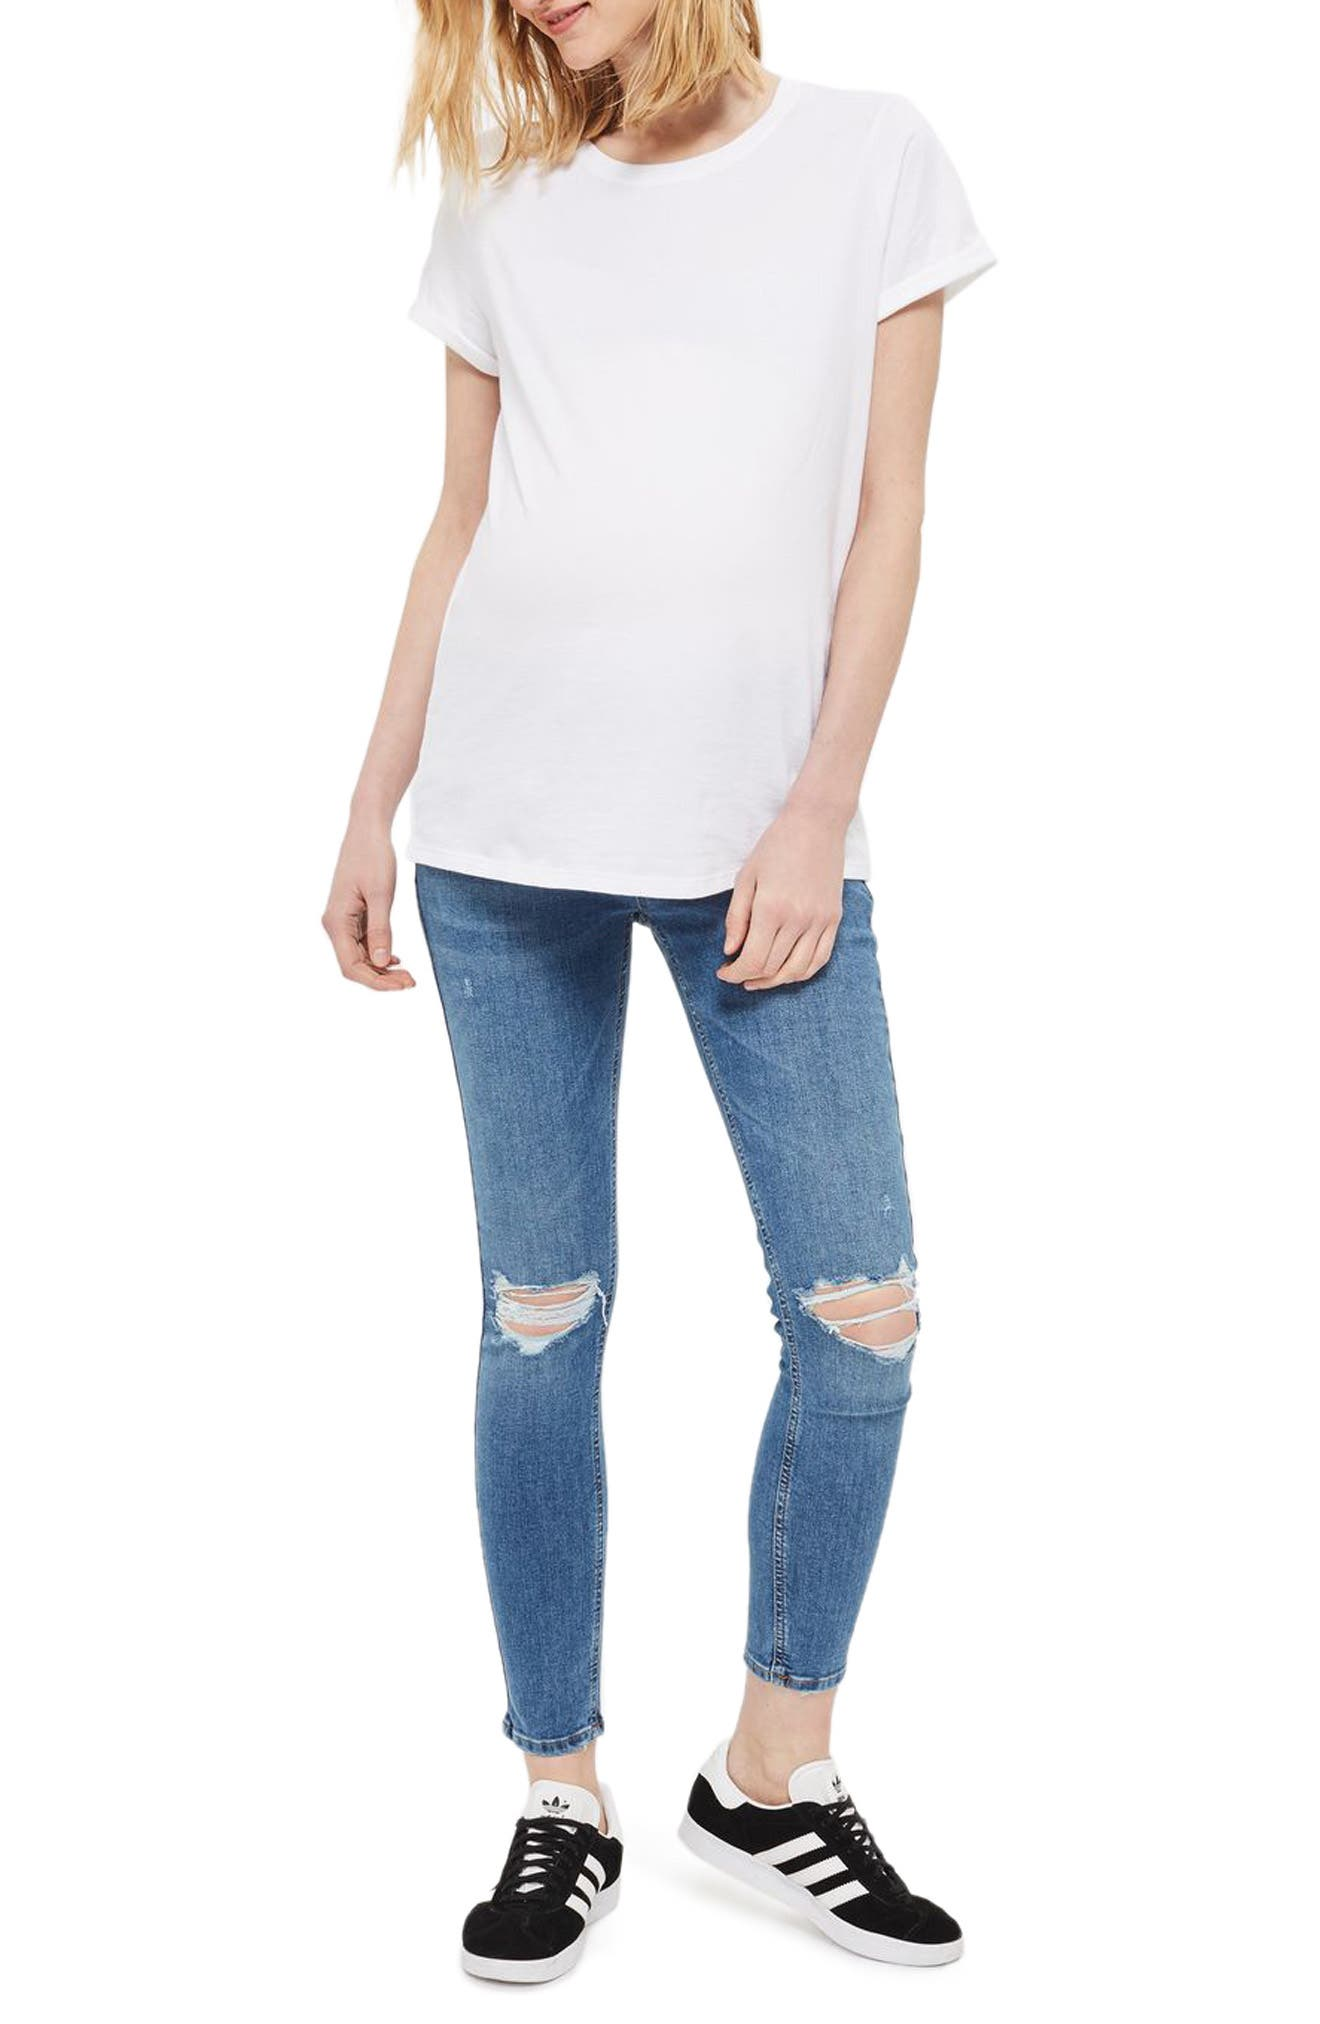 Topshop Jamie Rip Maternity Jeans